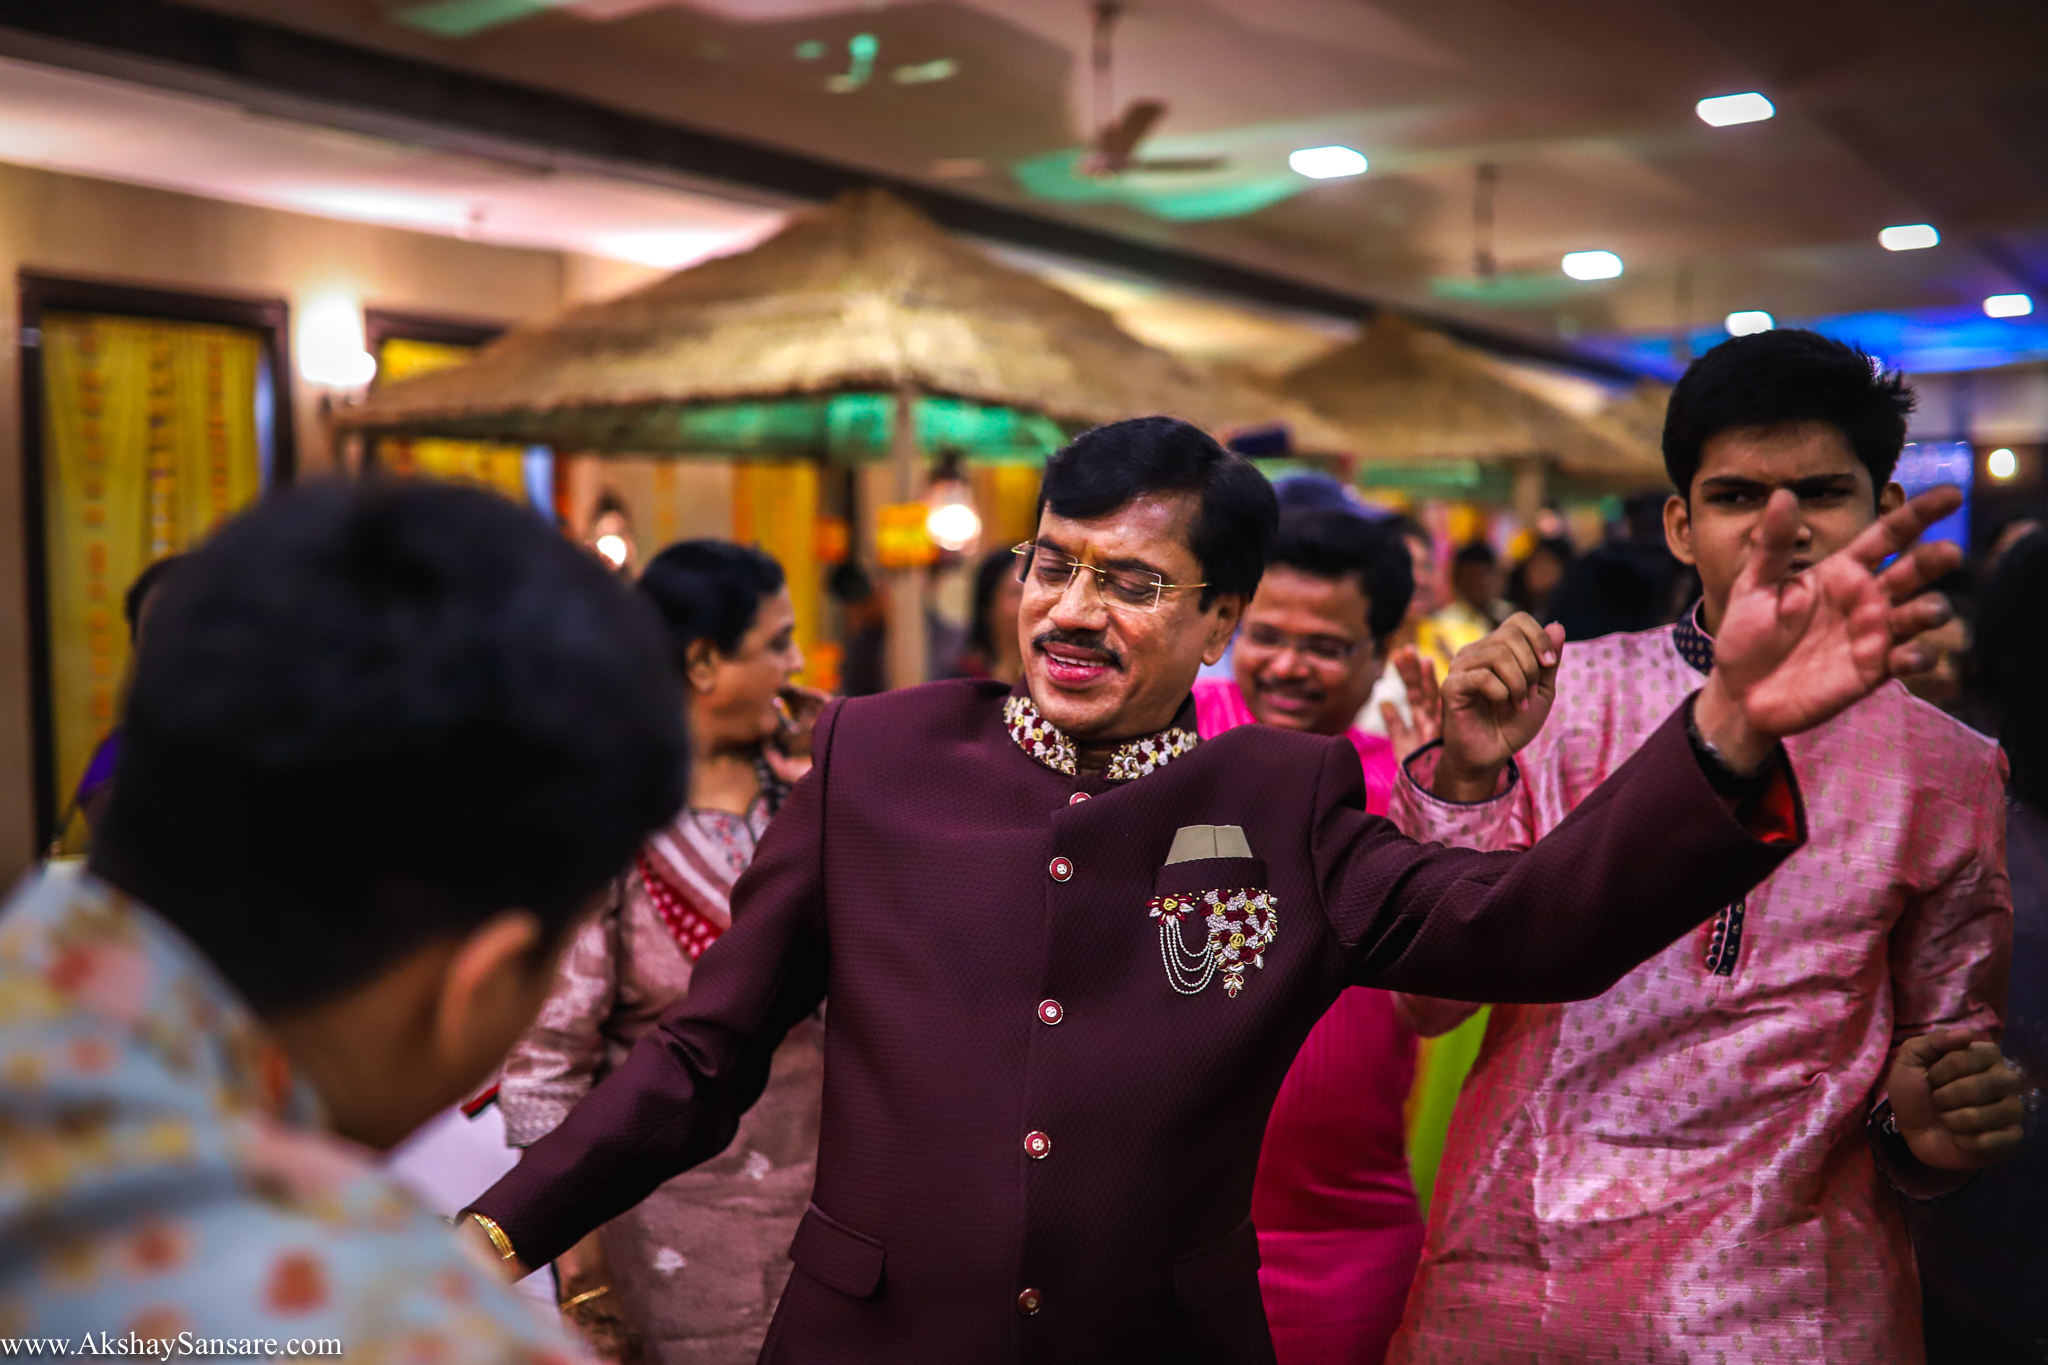 Nupur & Rohan wedding Akshay Sansare Photography best wedding photographer in mumbai India Candid(21).jpg